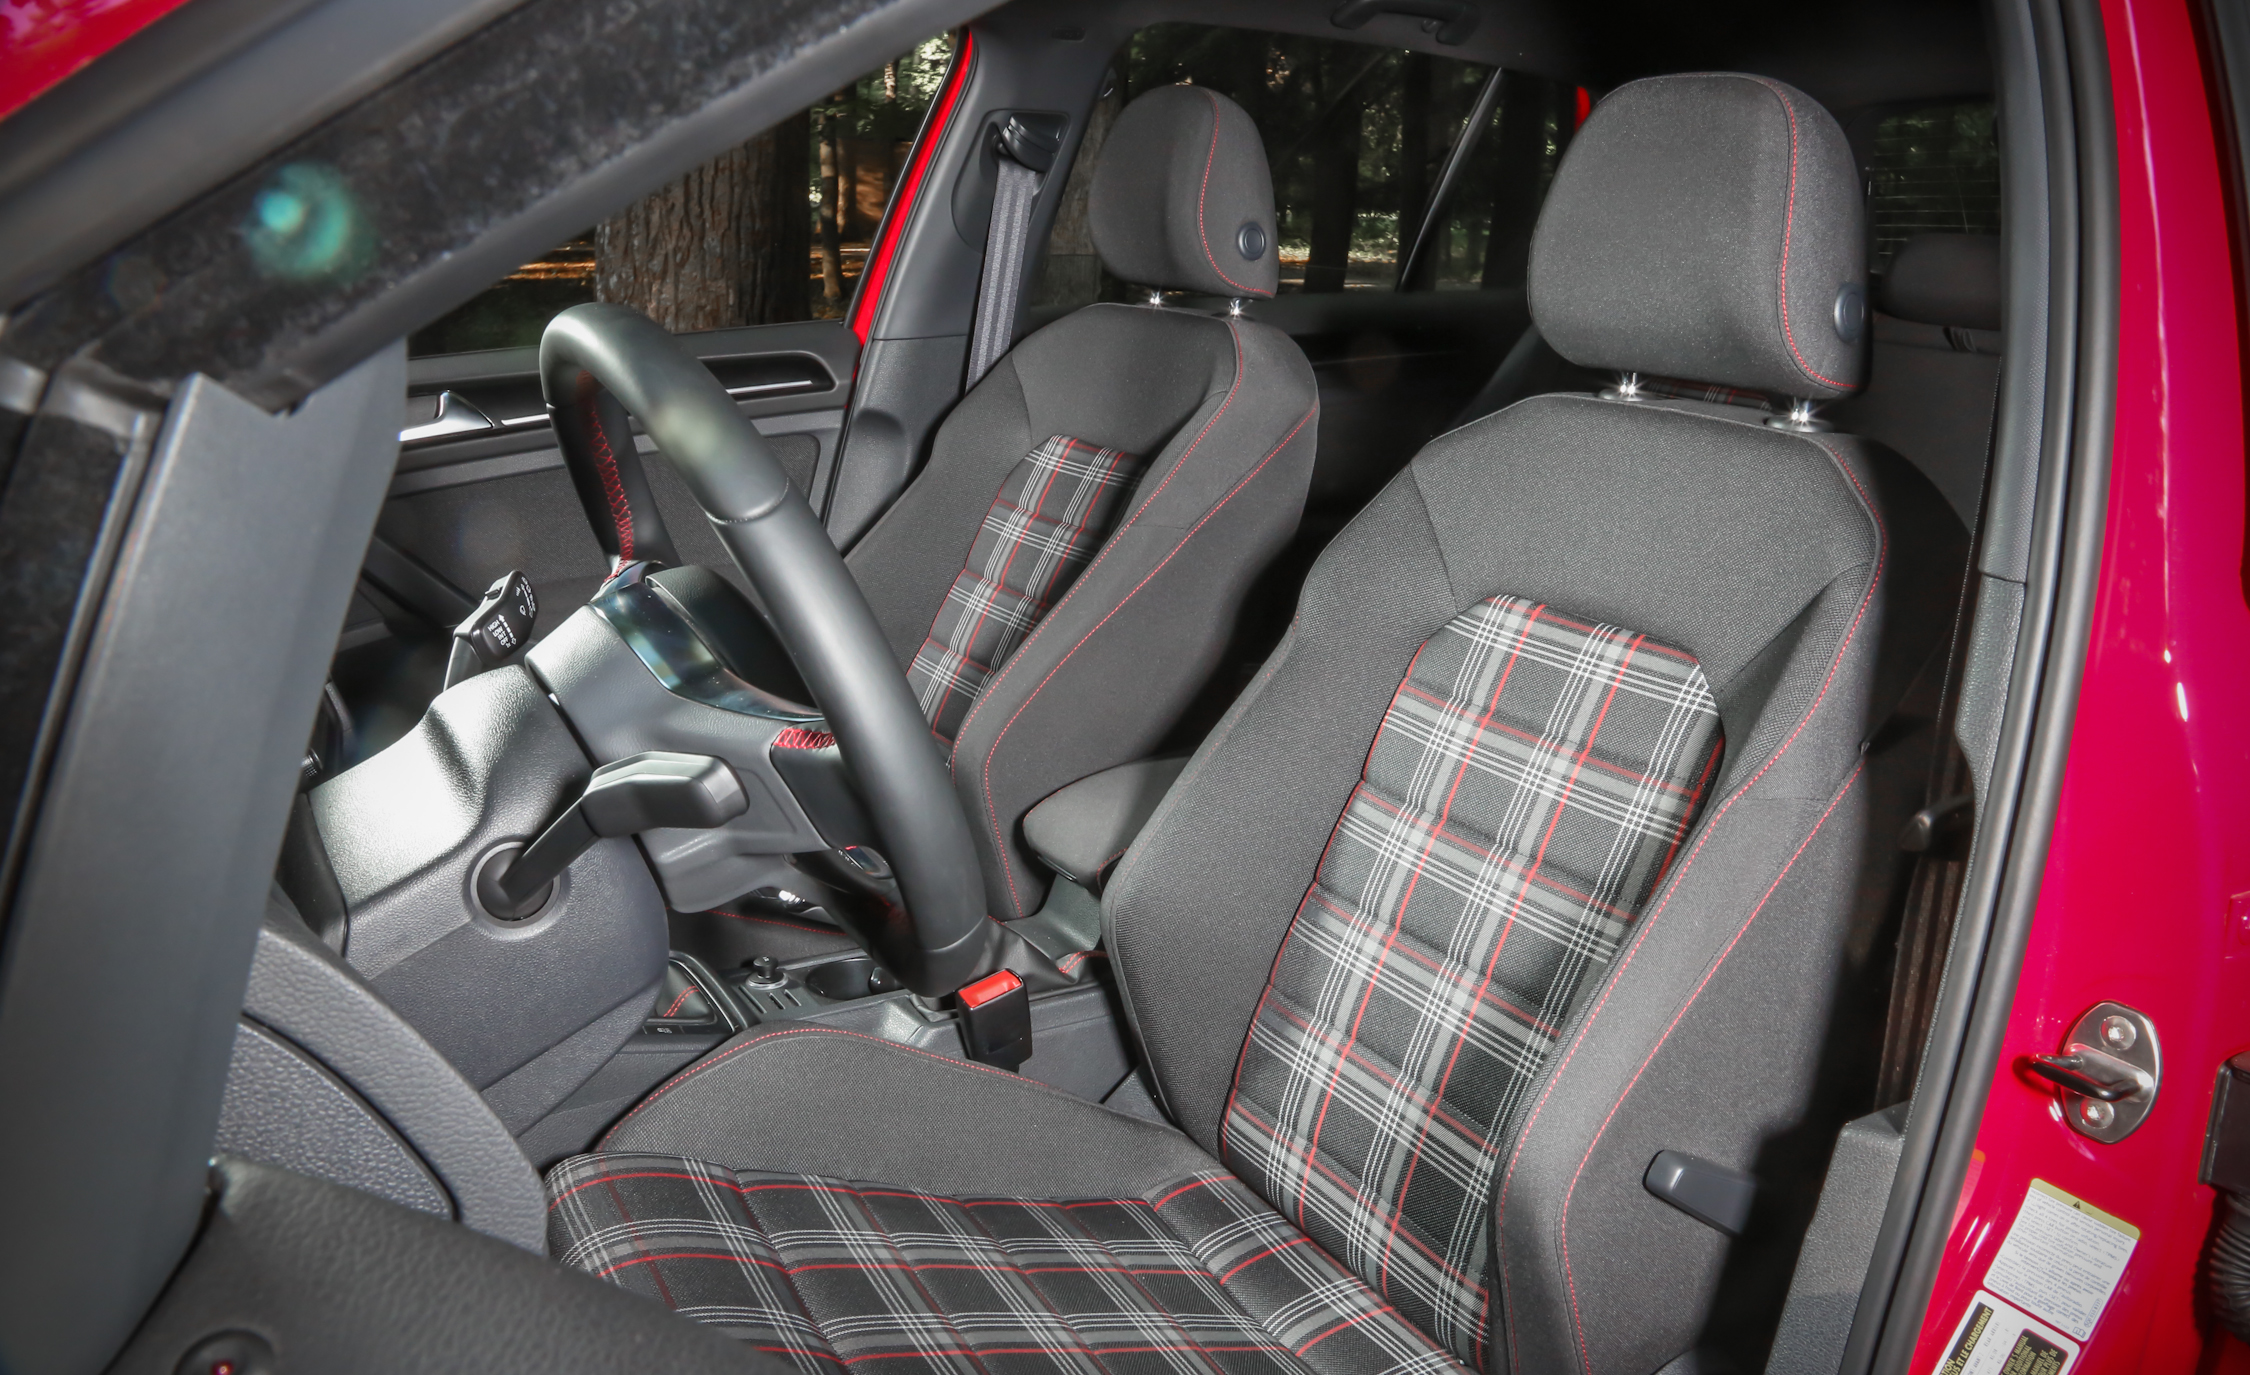 2015 Volkswagen GTI 5 Door Interior (Photo 41 of 55)